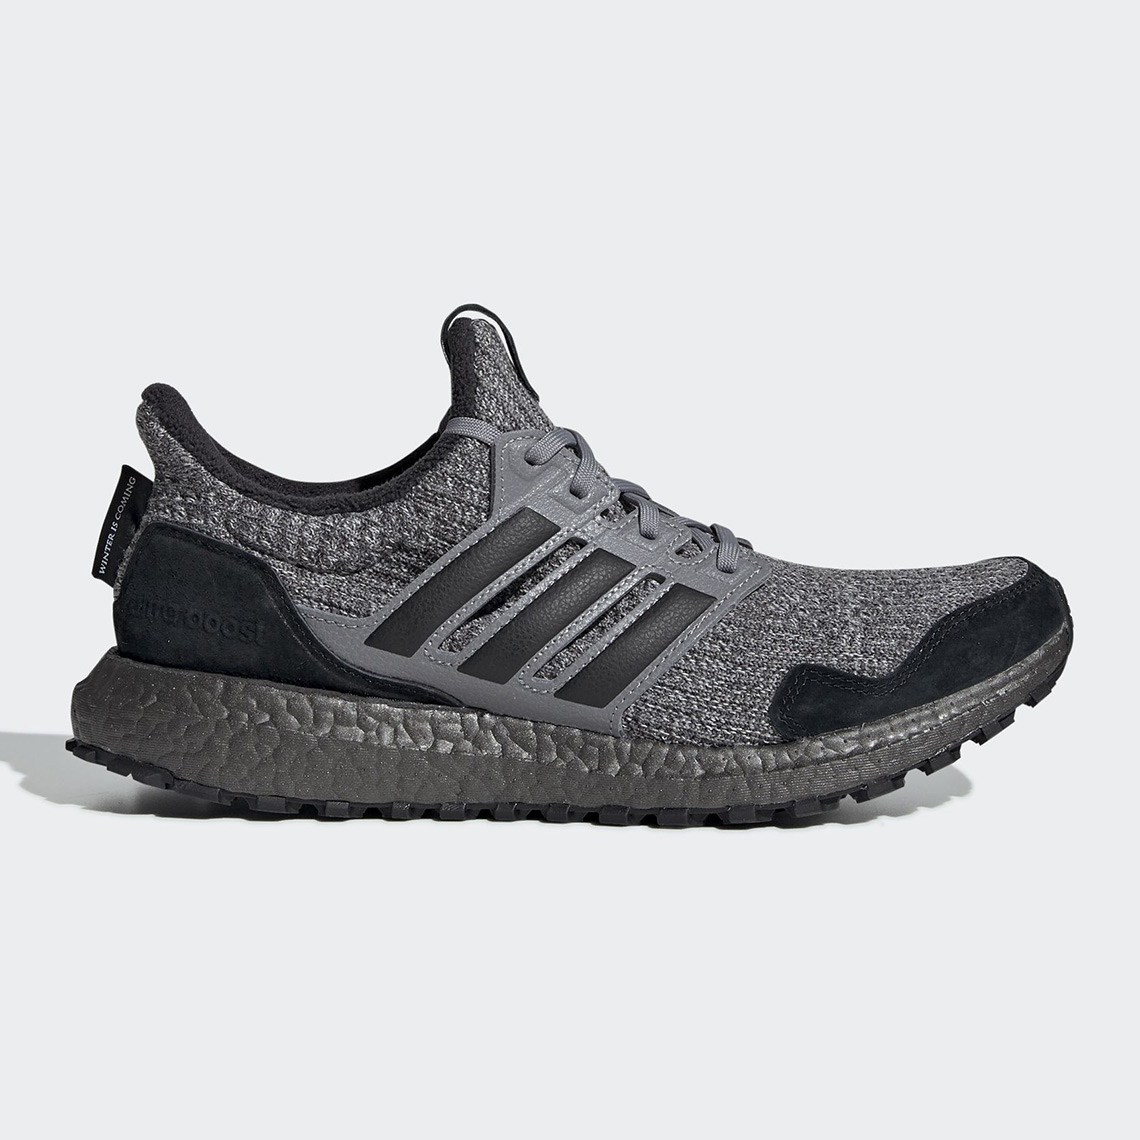 GAME OF THRONES X ADIDAS ULTRA BOOST LTD 'HOUSE STARK' EE3706